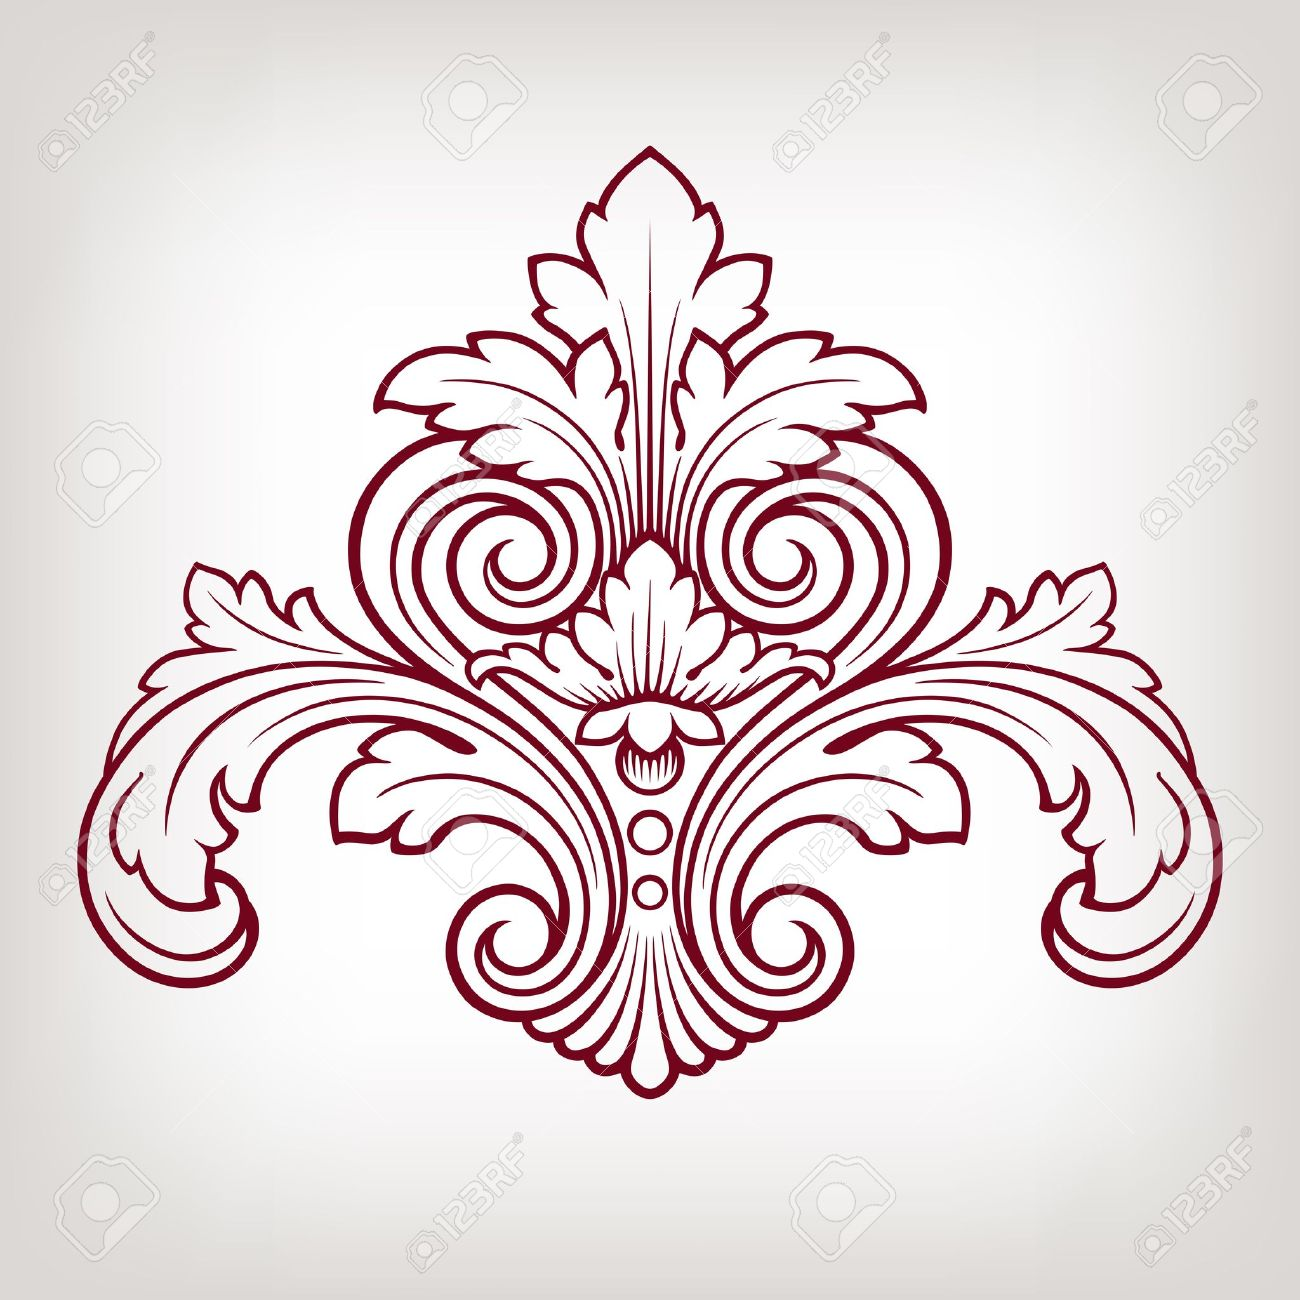 vintage baroque damask design frame pattern element engraving